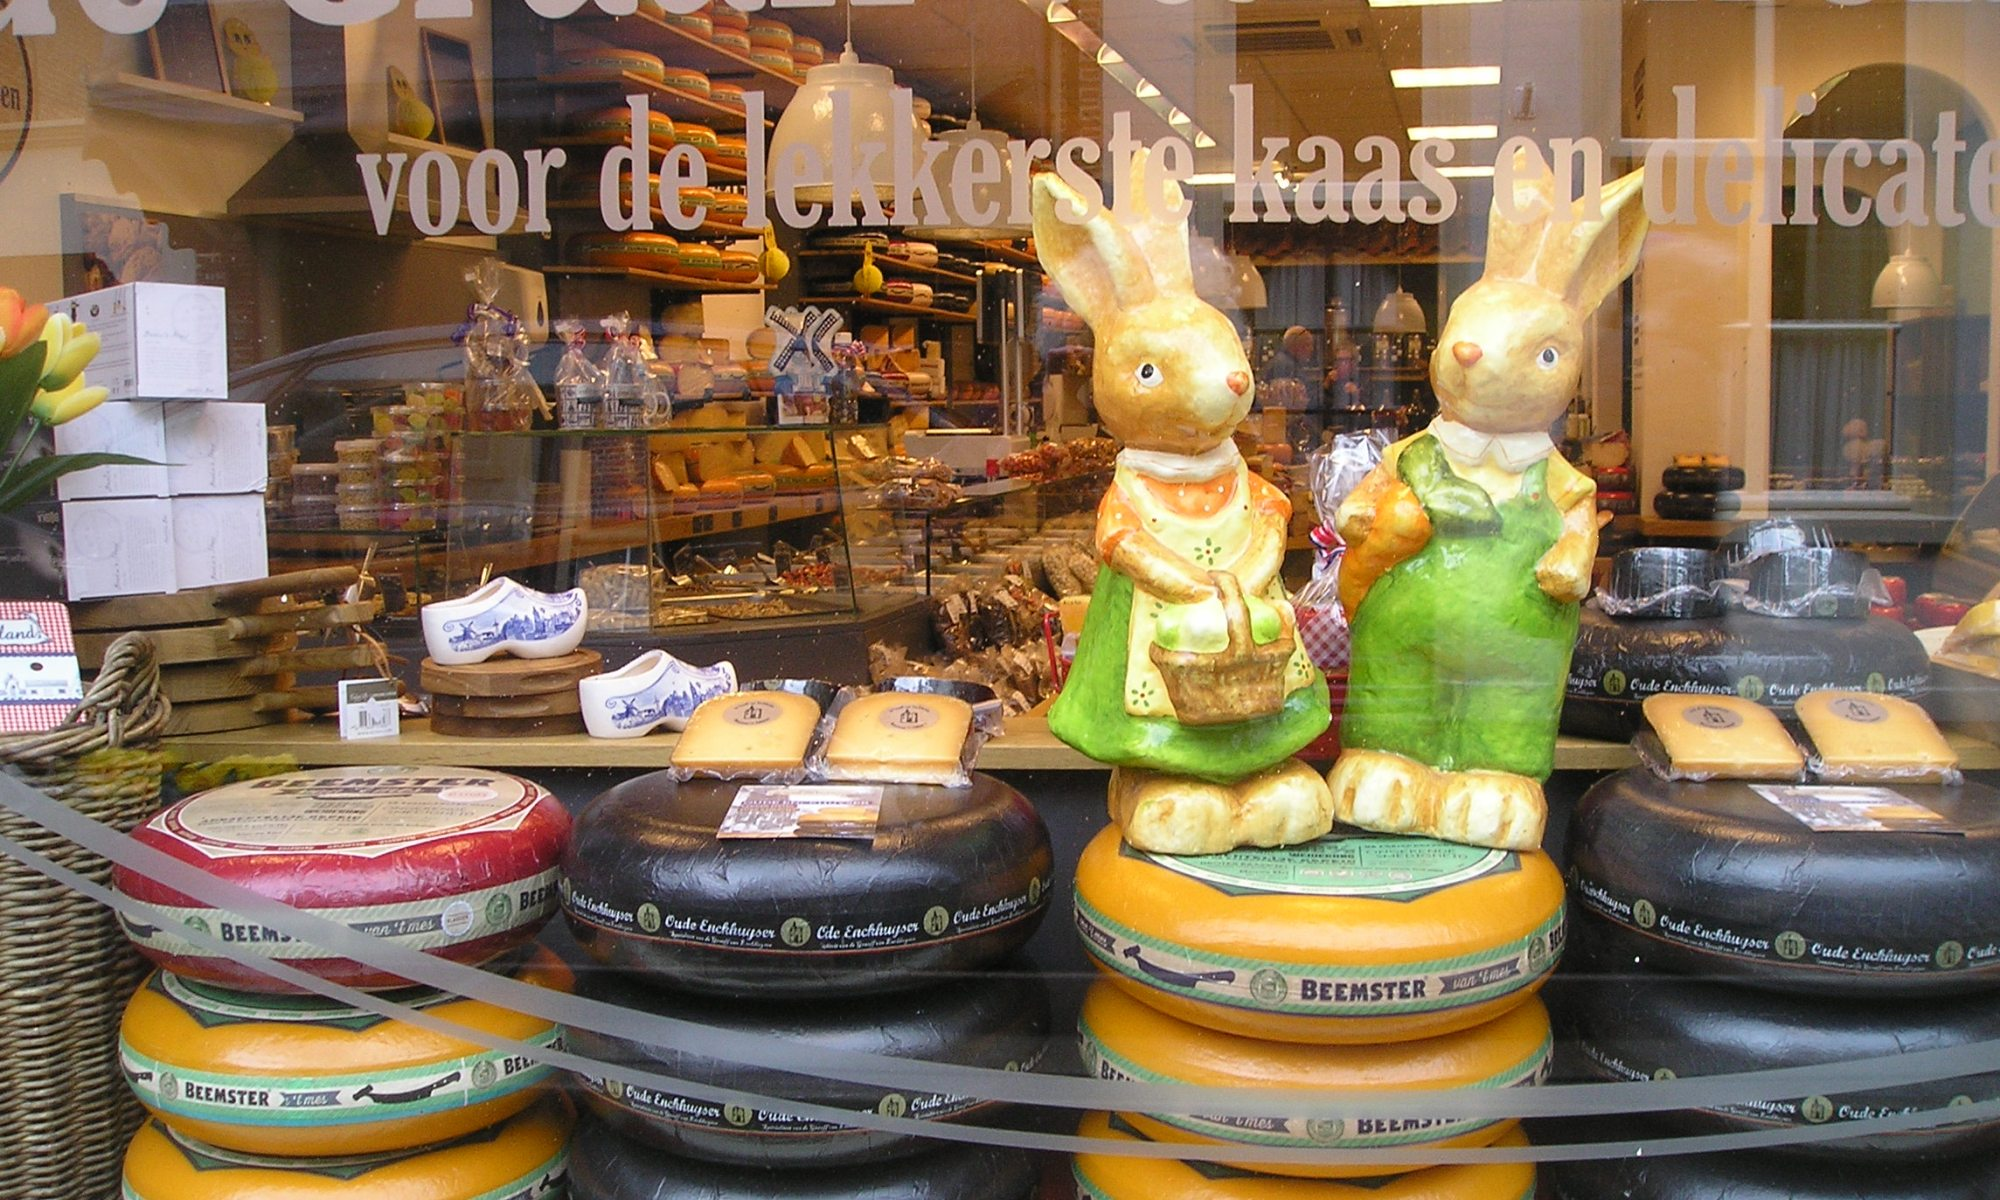 Two chocolate Easter bunnies were on top of the cheeses